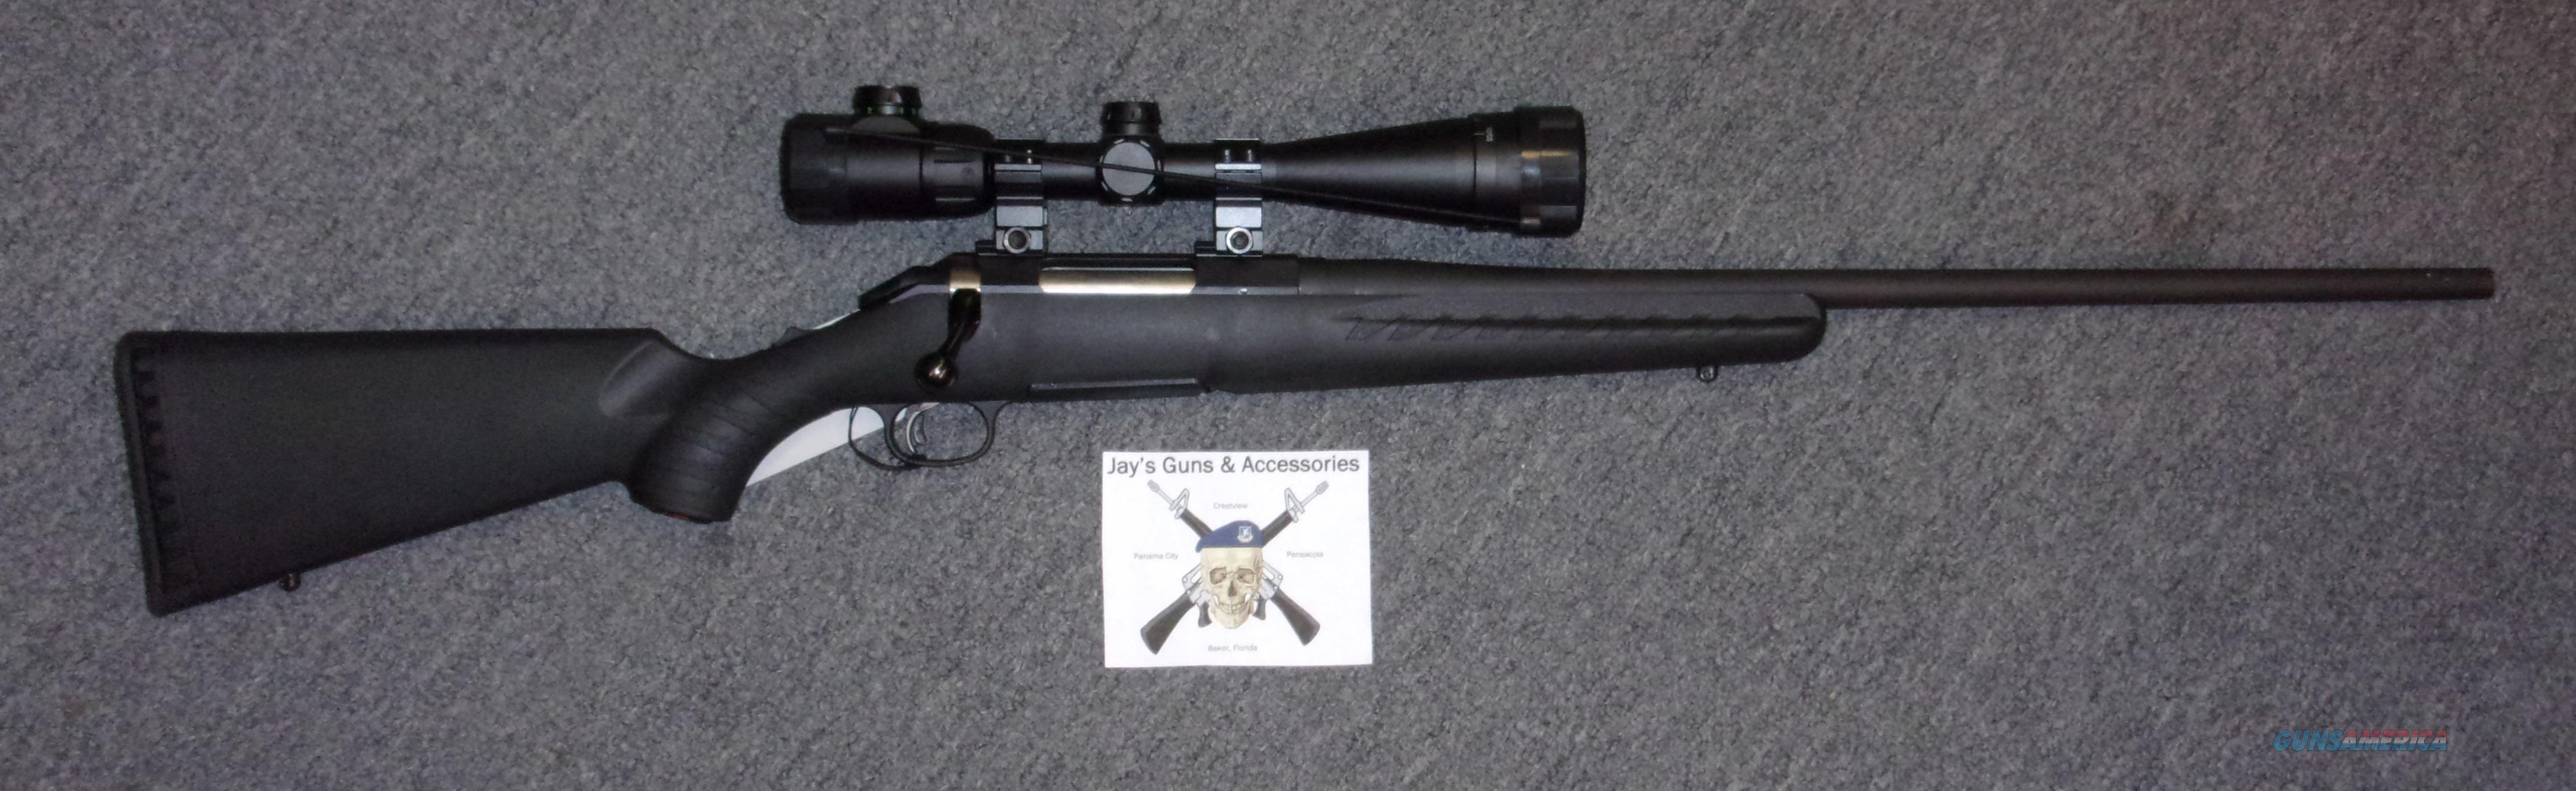 Ruger American w/Scope  Guns > Rifles > Ruger Rifles > American